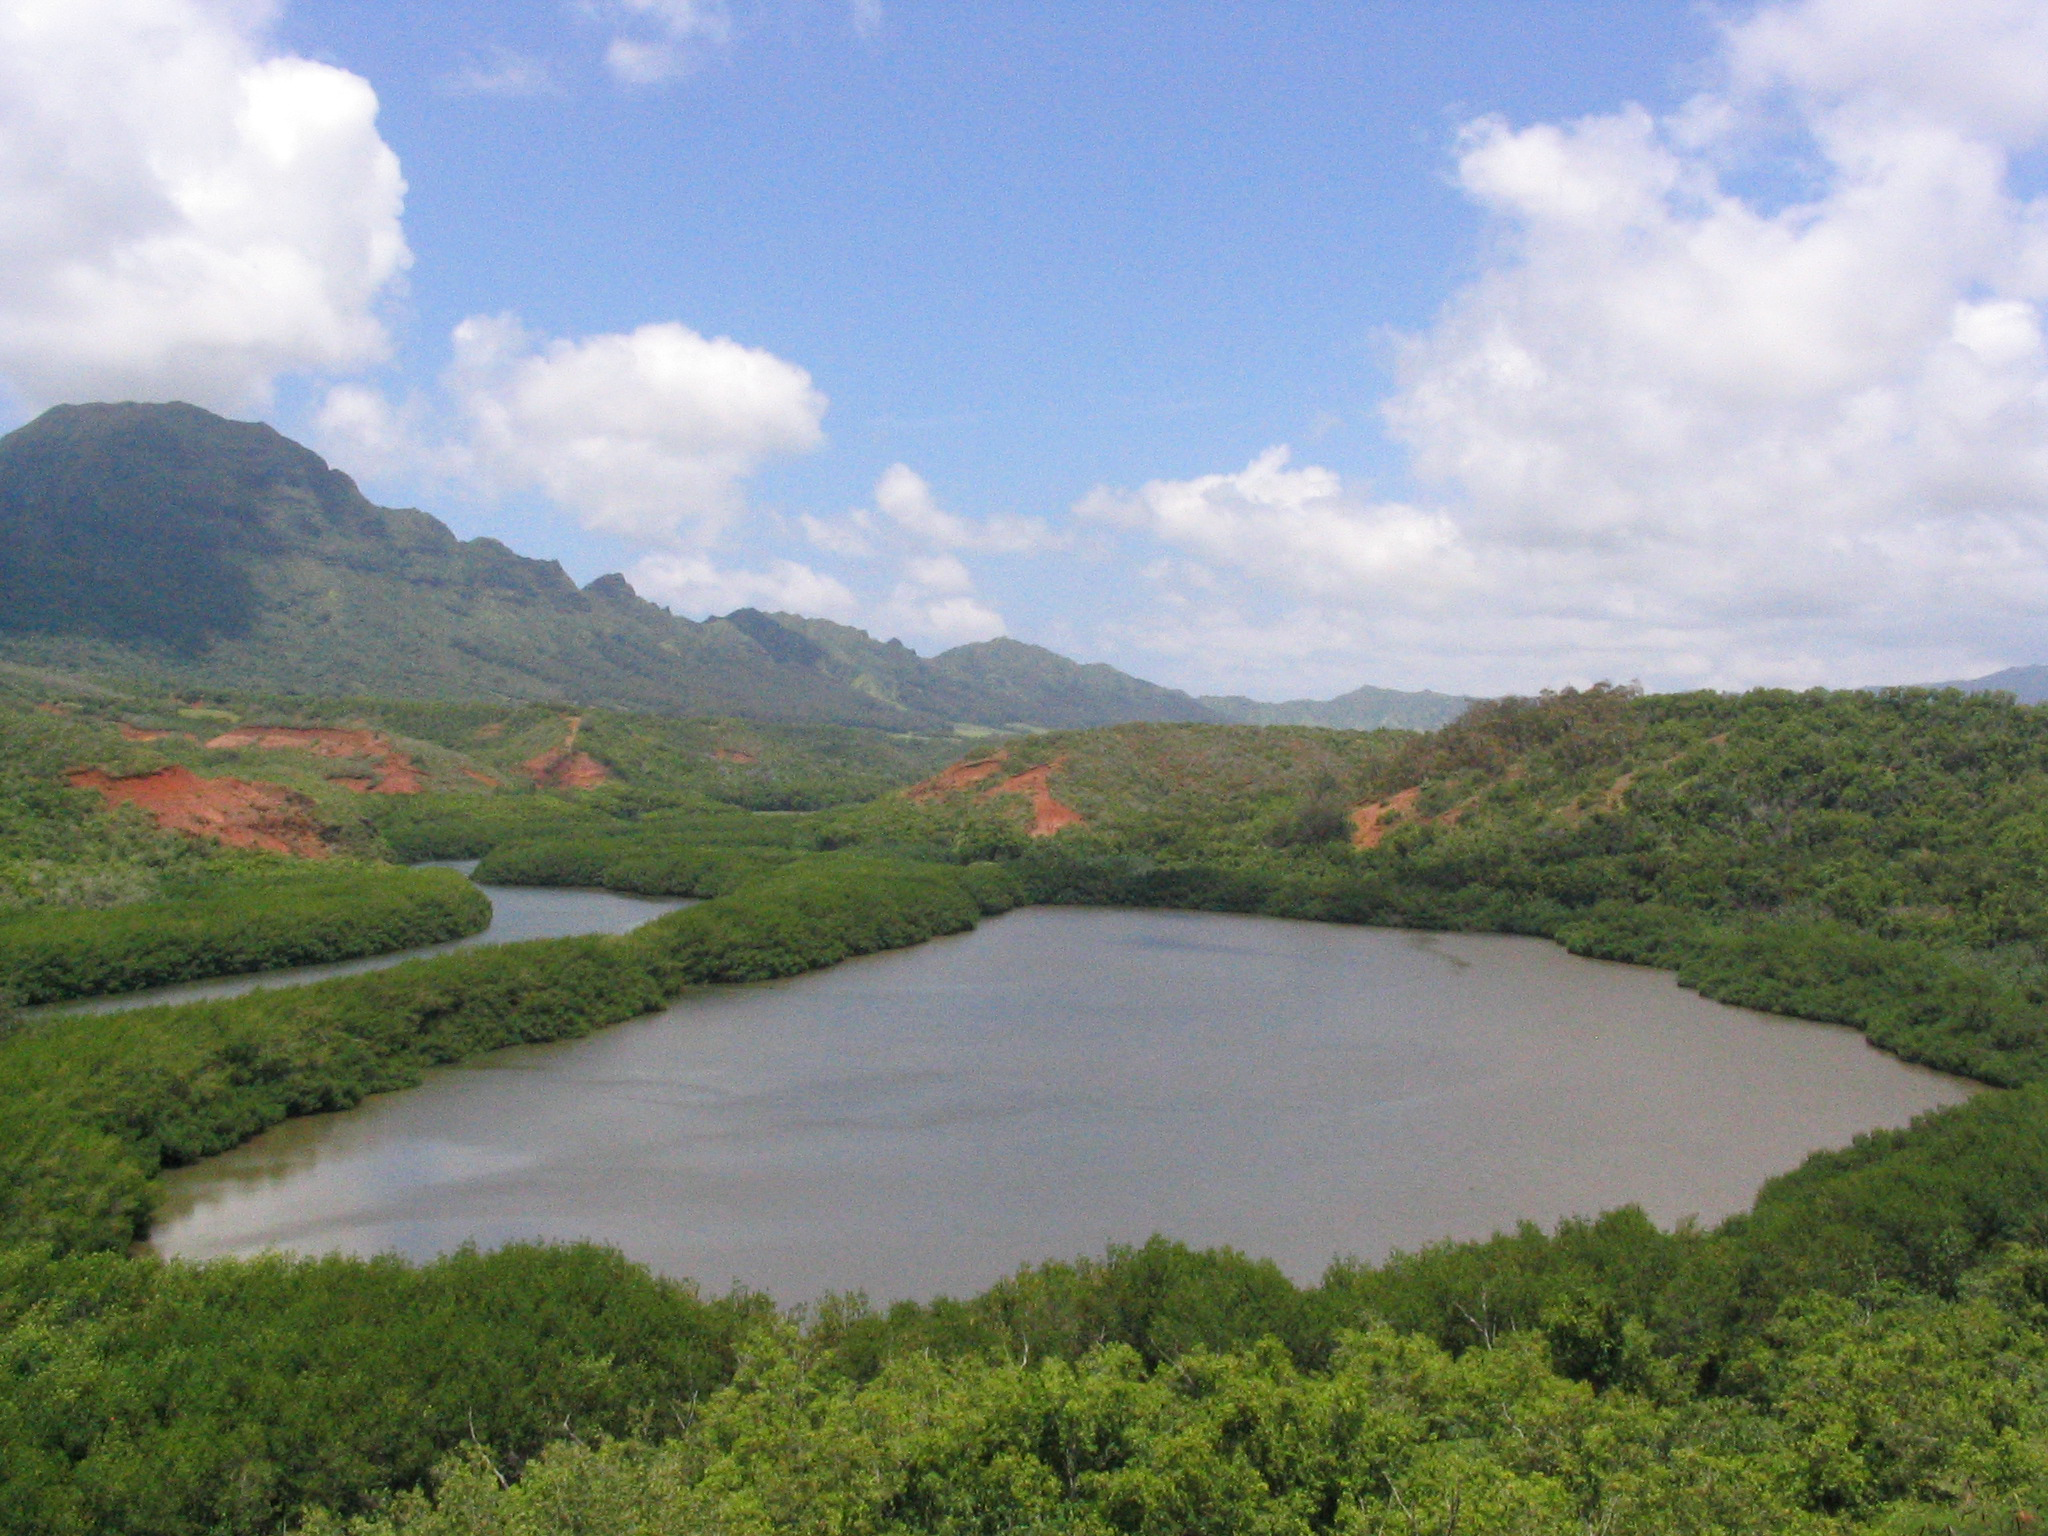 [ʻAlekoko fishpond] (a.k.a. Menehune fishpond). Photo by Collin Grady.